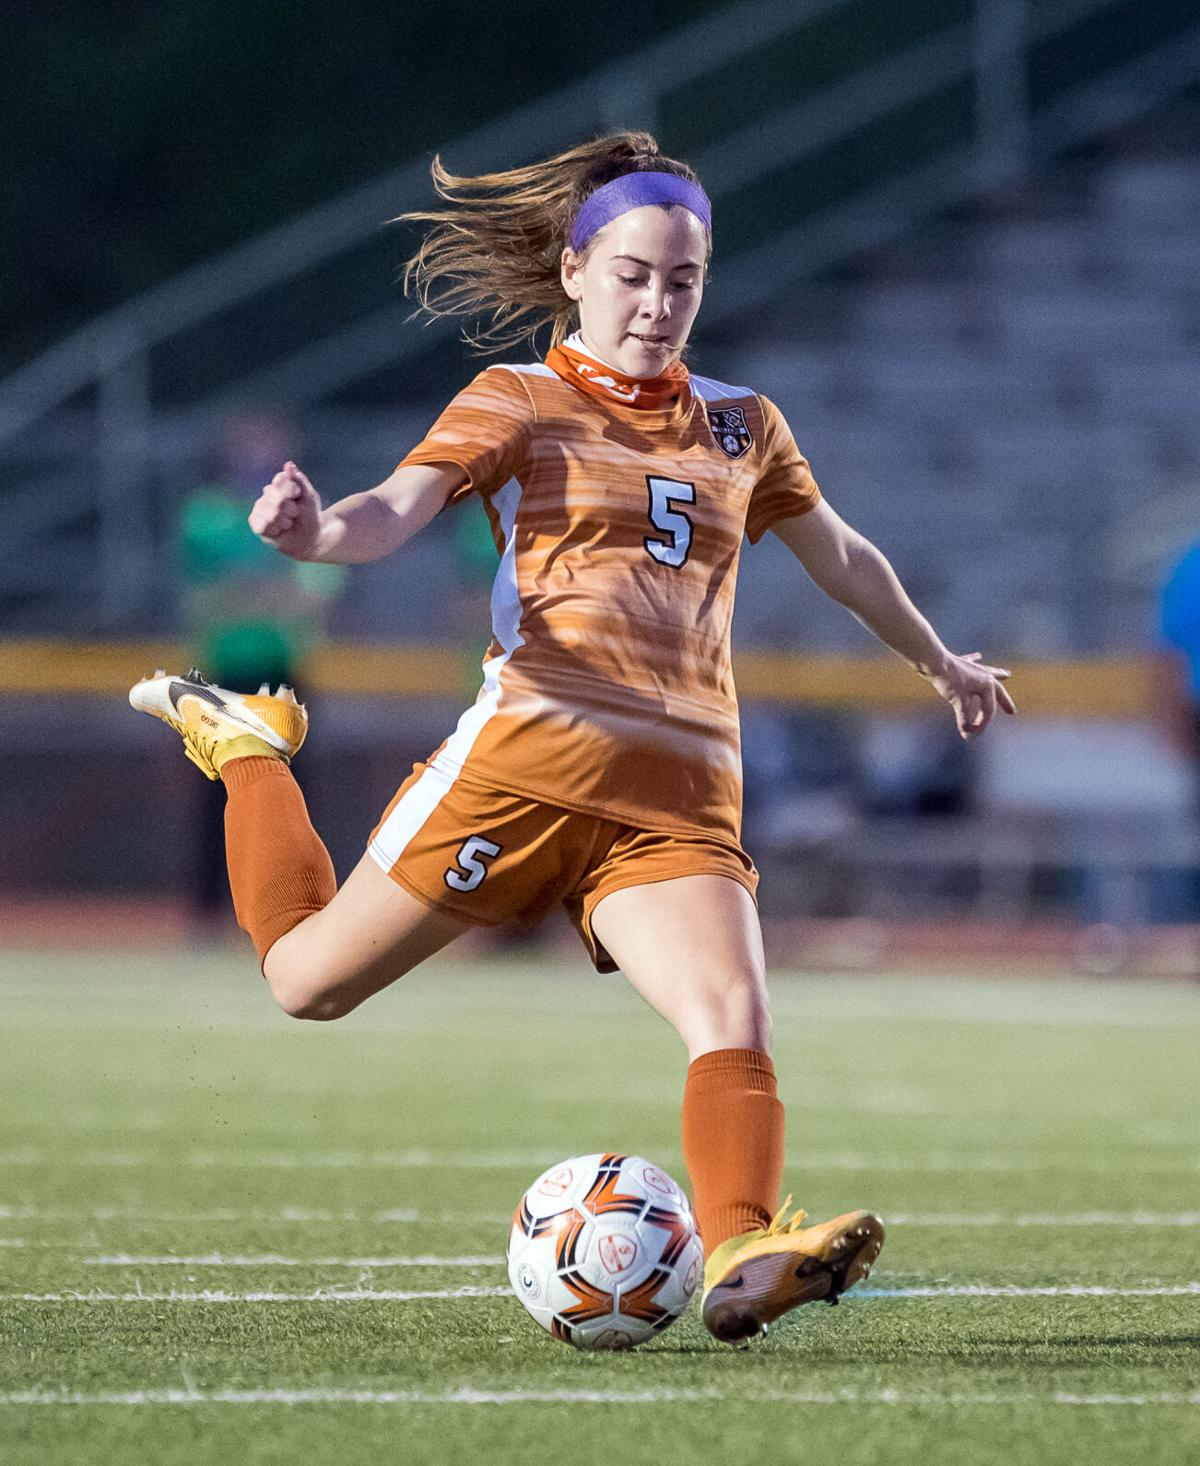 spt 4-1 beeville gso jacey taylor 1.jpg